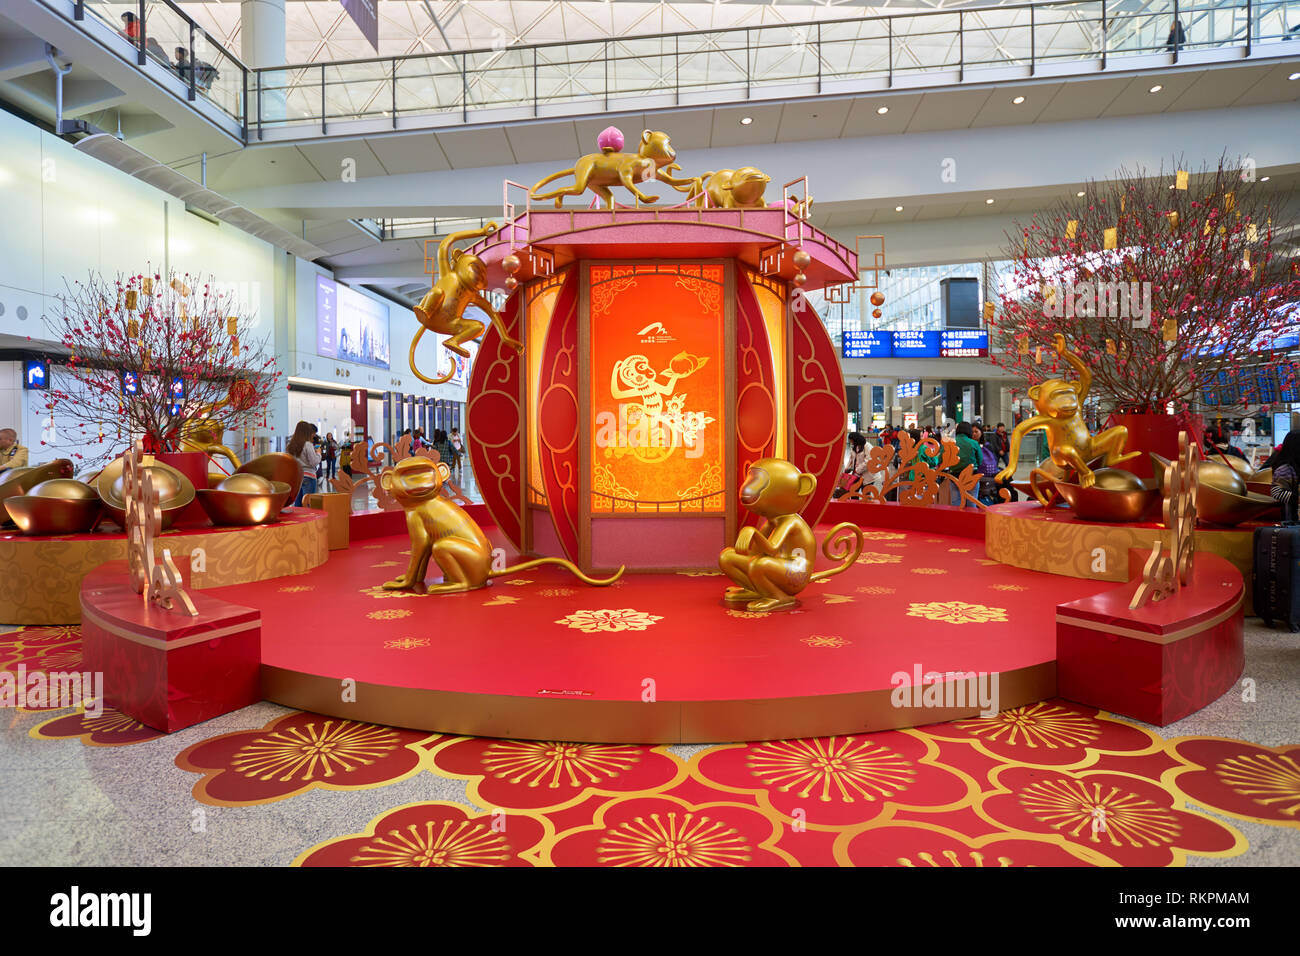 HONG KONG - 29 JANUARY, 2016: Chinese New Year decorations at Hong Kong International Airport. Hong Kong International Airport is the main airport in  - Stock Image